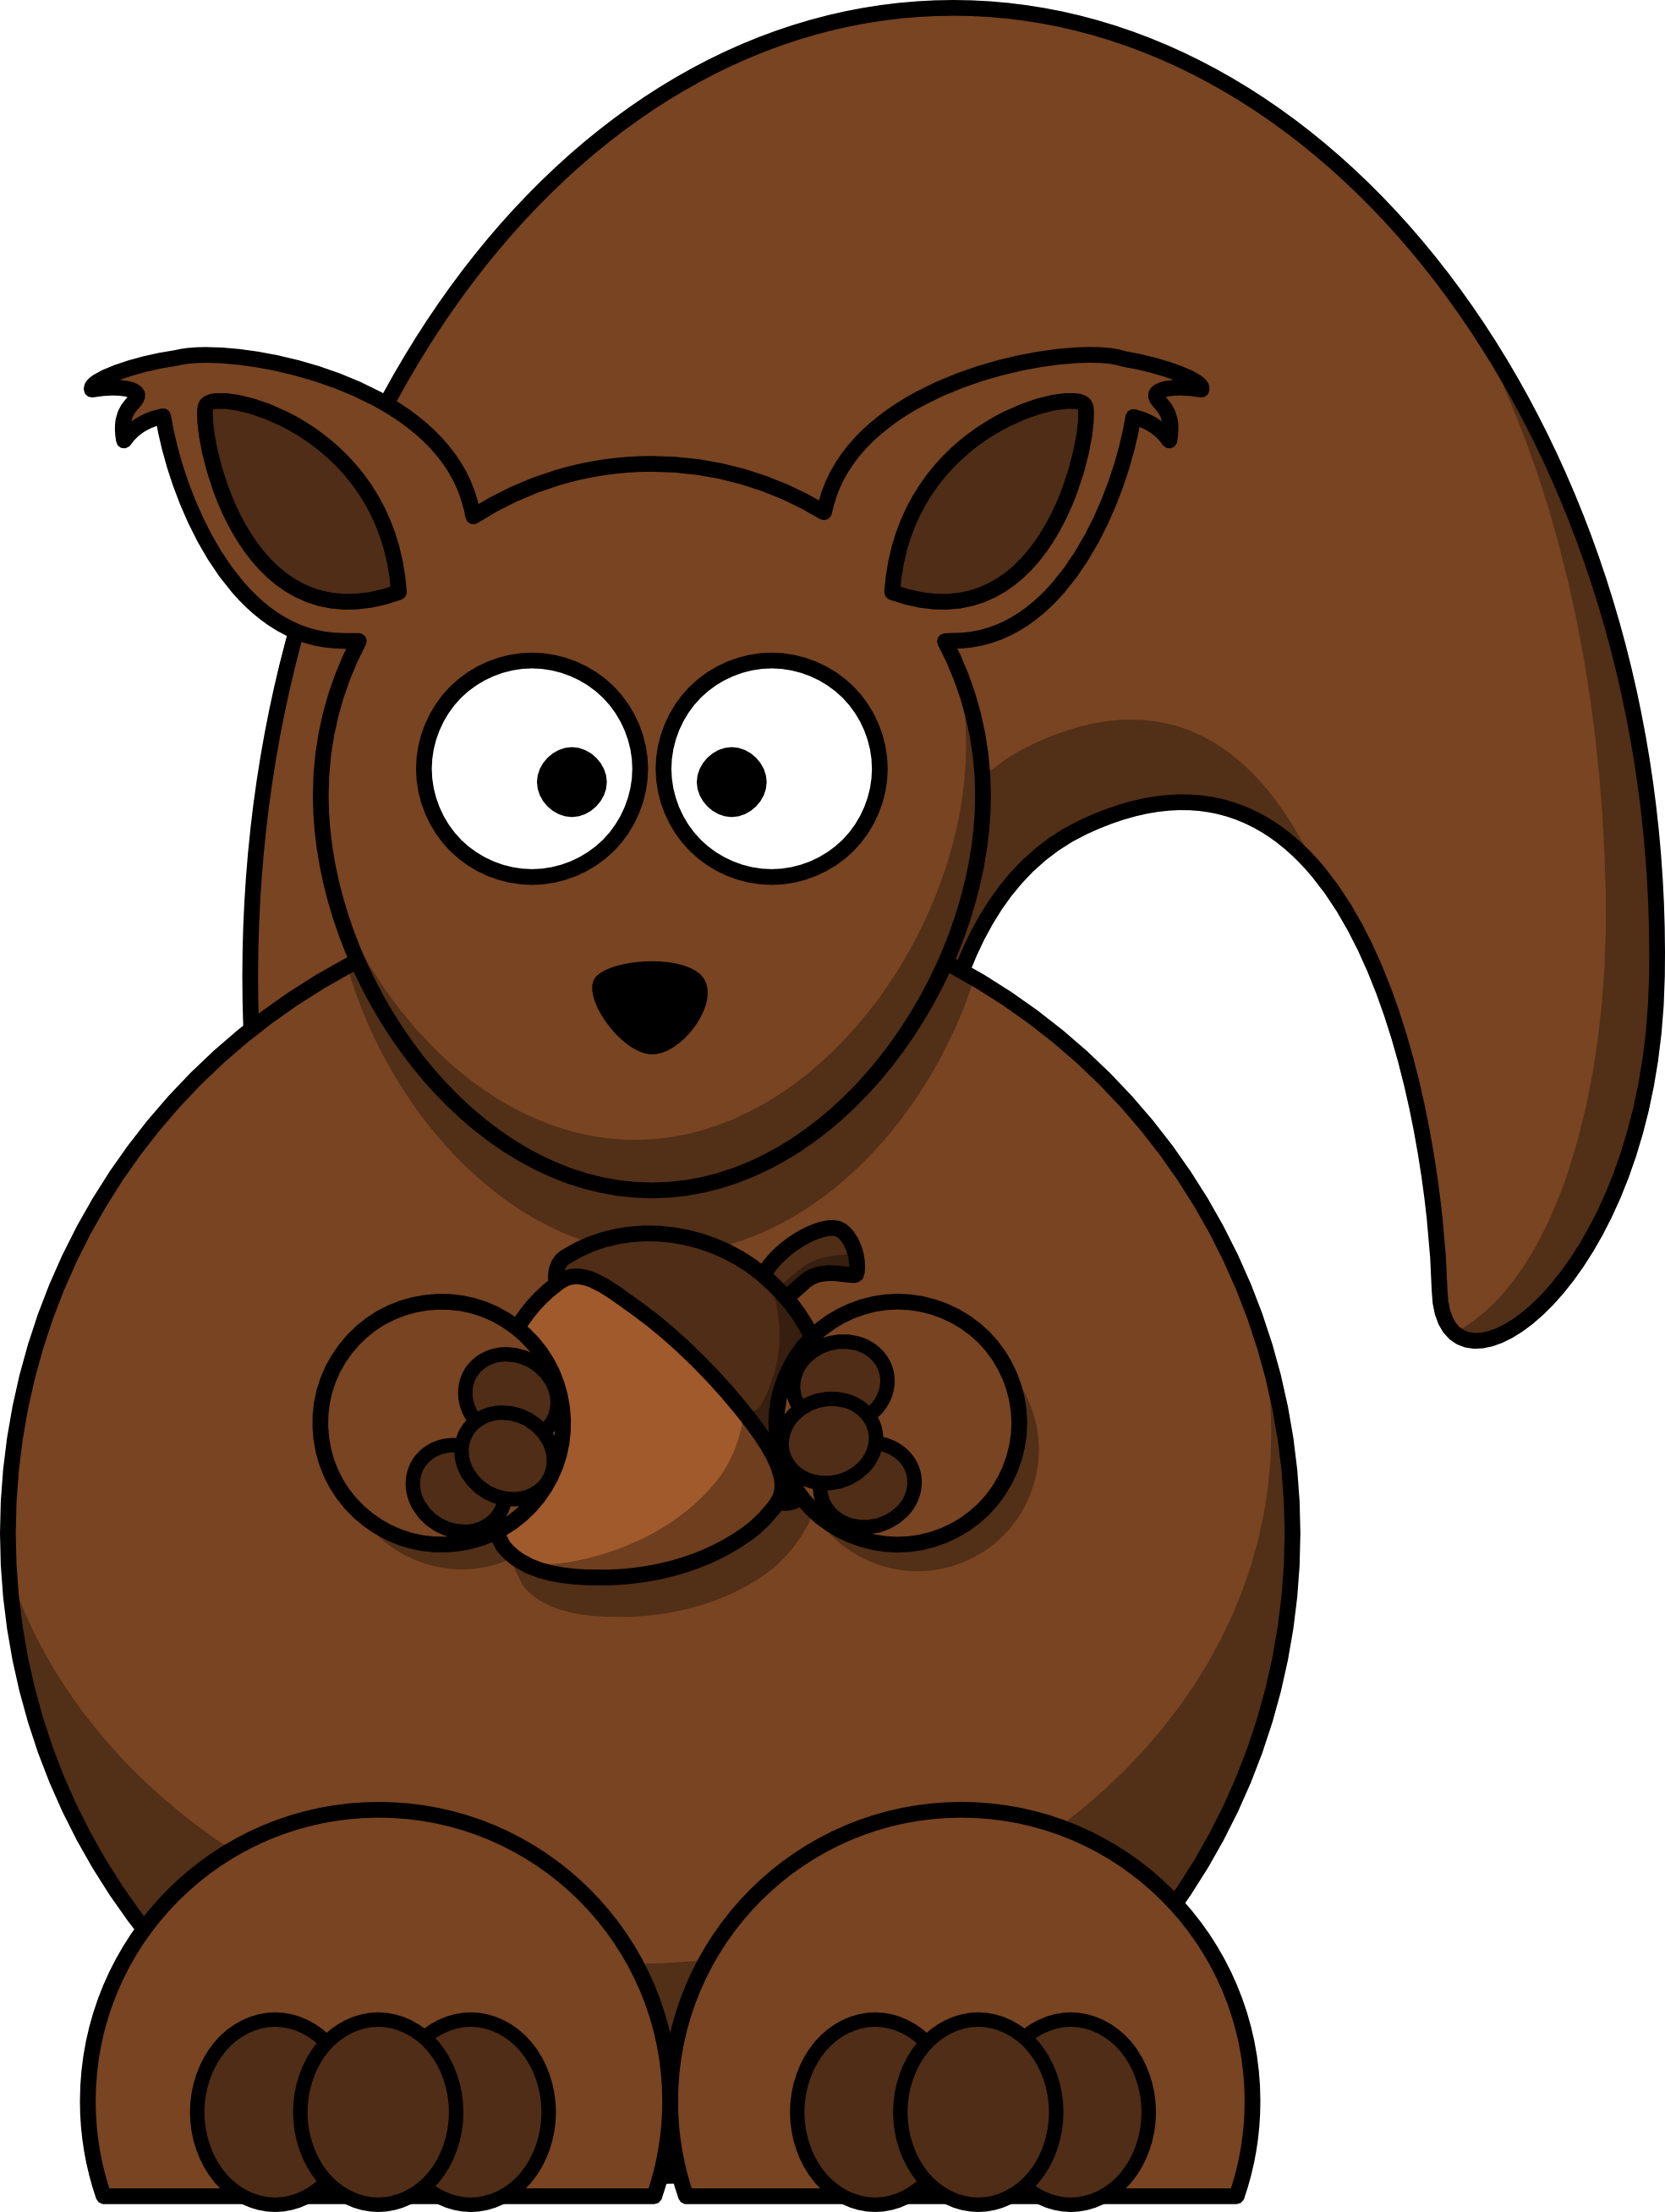 Animated Squirrel Clipart.